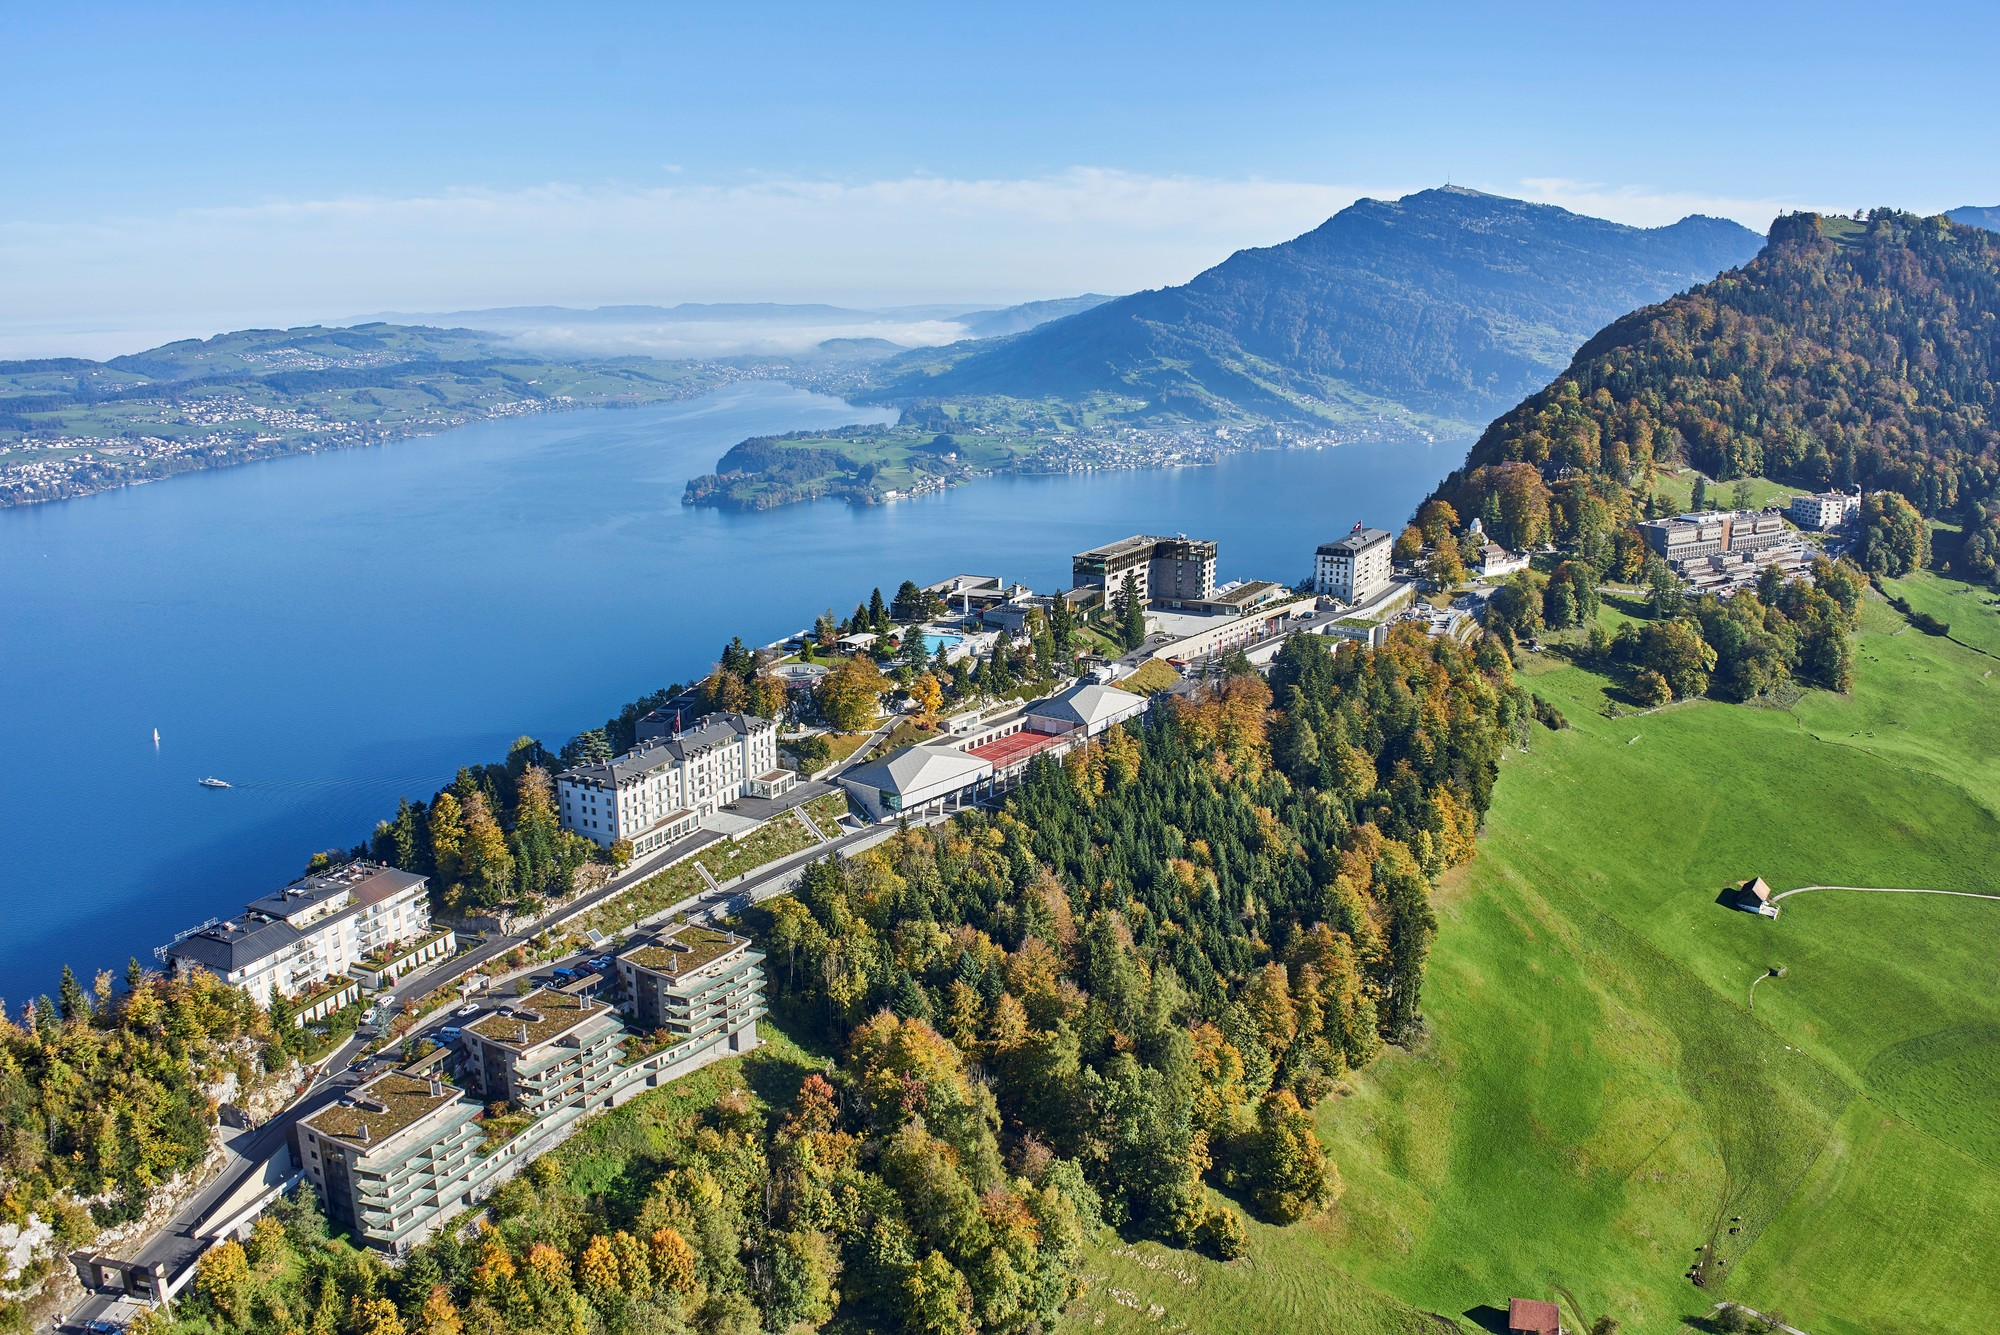 Four Post Lift >> Bürgenstock Resort | Day trips | Lucerne